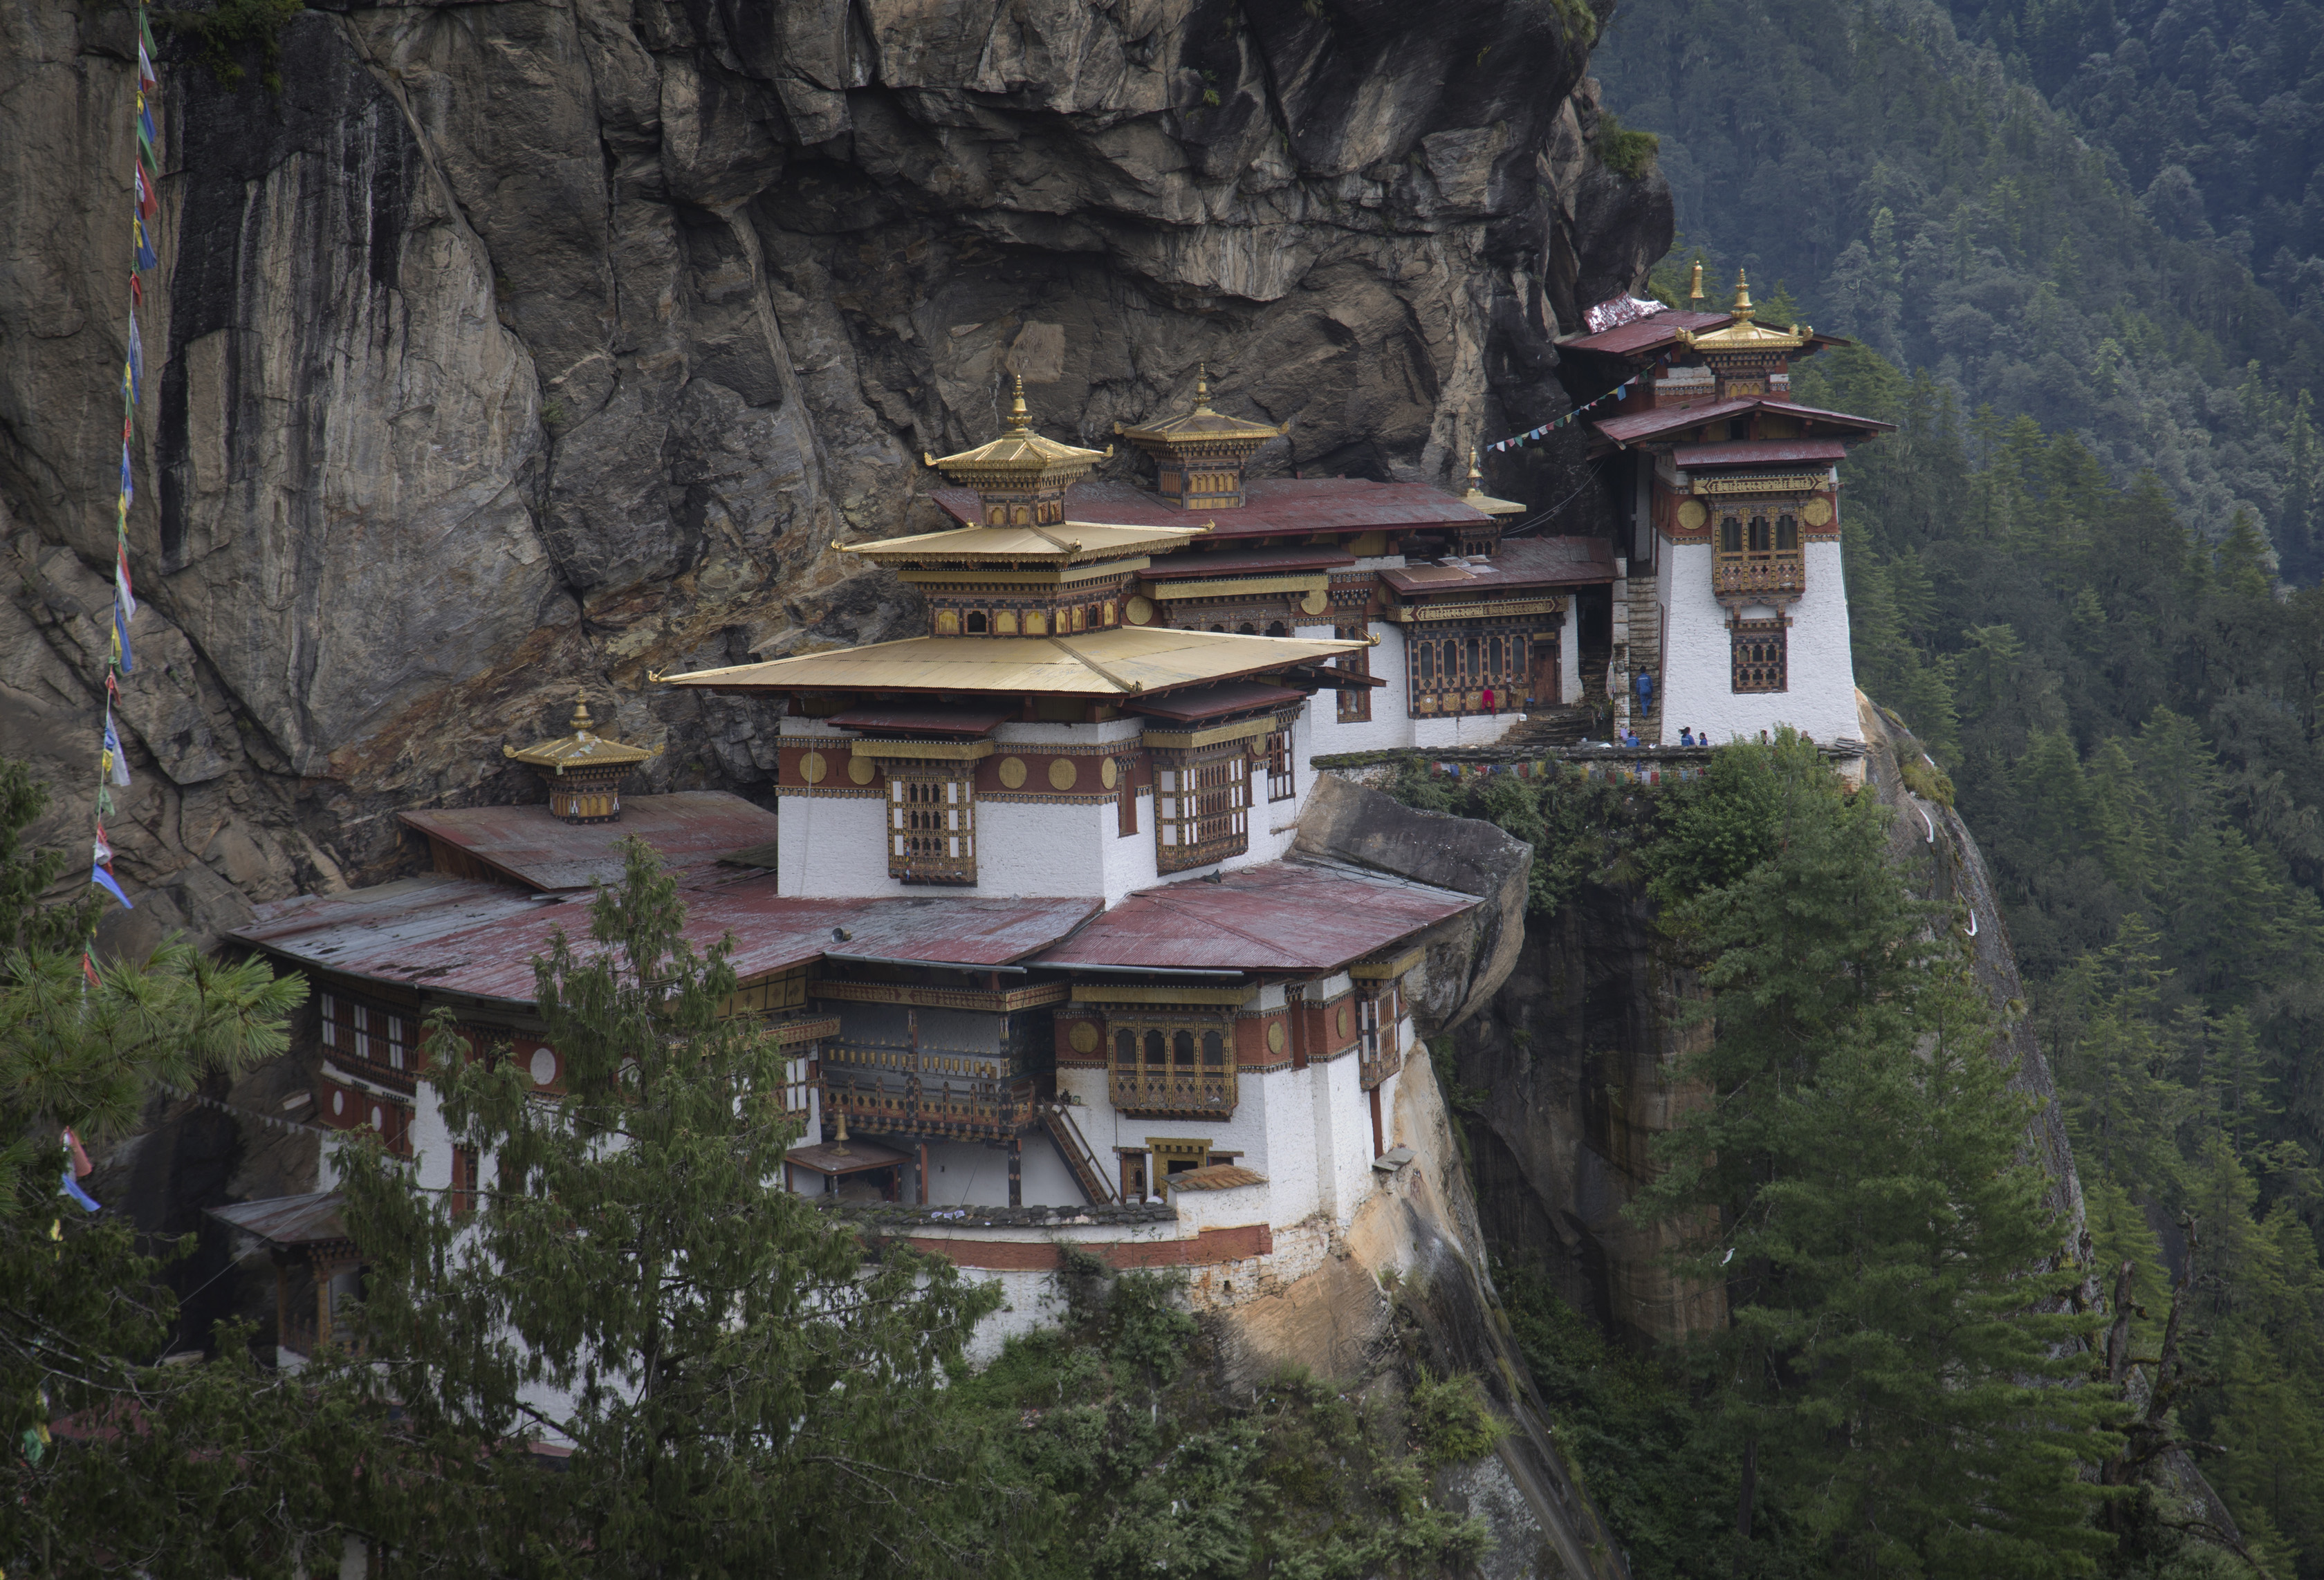 Paro, Bhutan - September 7, 2013 : Taktsang Palphug Monastery, or The Tiger's Nest Temple, near Paro, Bhutan on September 7, 2013. Bhutan, a Buddhist kingdom which allows only a limited number of travelers since it opened to foreigners in 1974 in order to preserve its fragile environment and culture, has become an increasingly popular destination for international tourists.  (Photo by Kuni Takahashi/Getty Images)